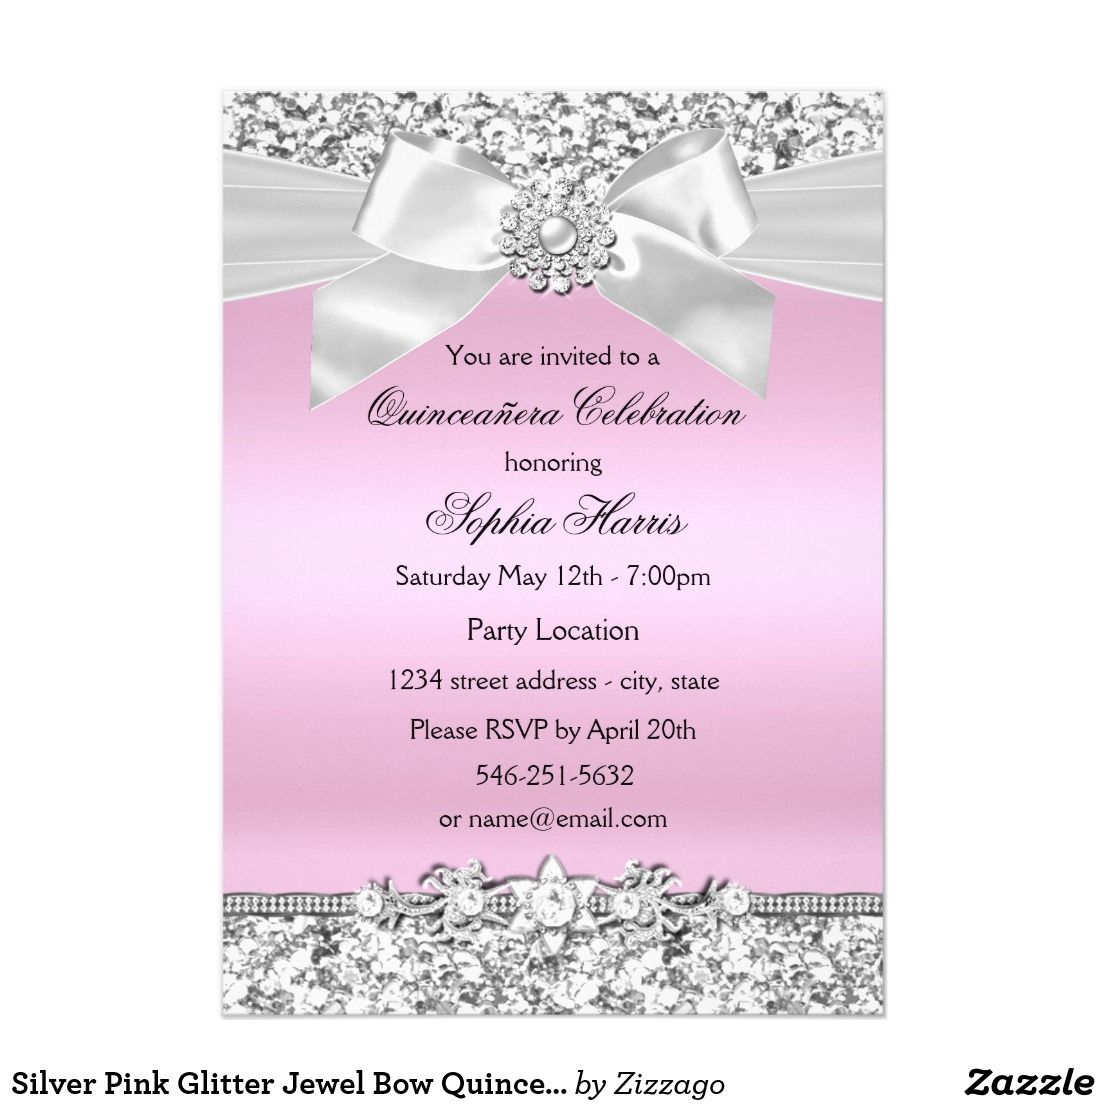 Silver pink glitter jewel bow quinceanera birthday card pink silver pink glitter jewel bow quinceanera birthday card bookmarktalkfo Gallery